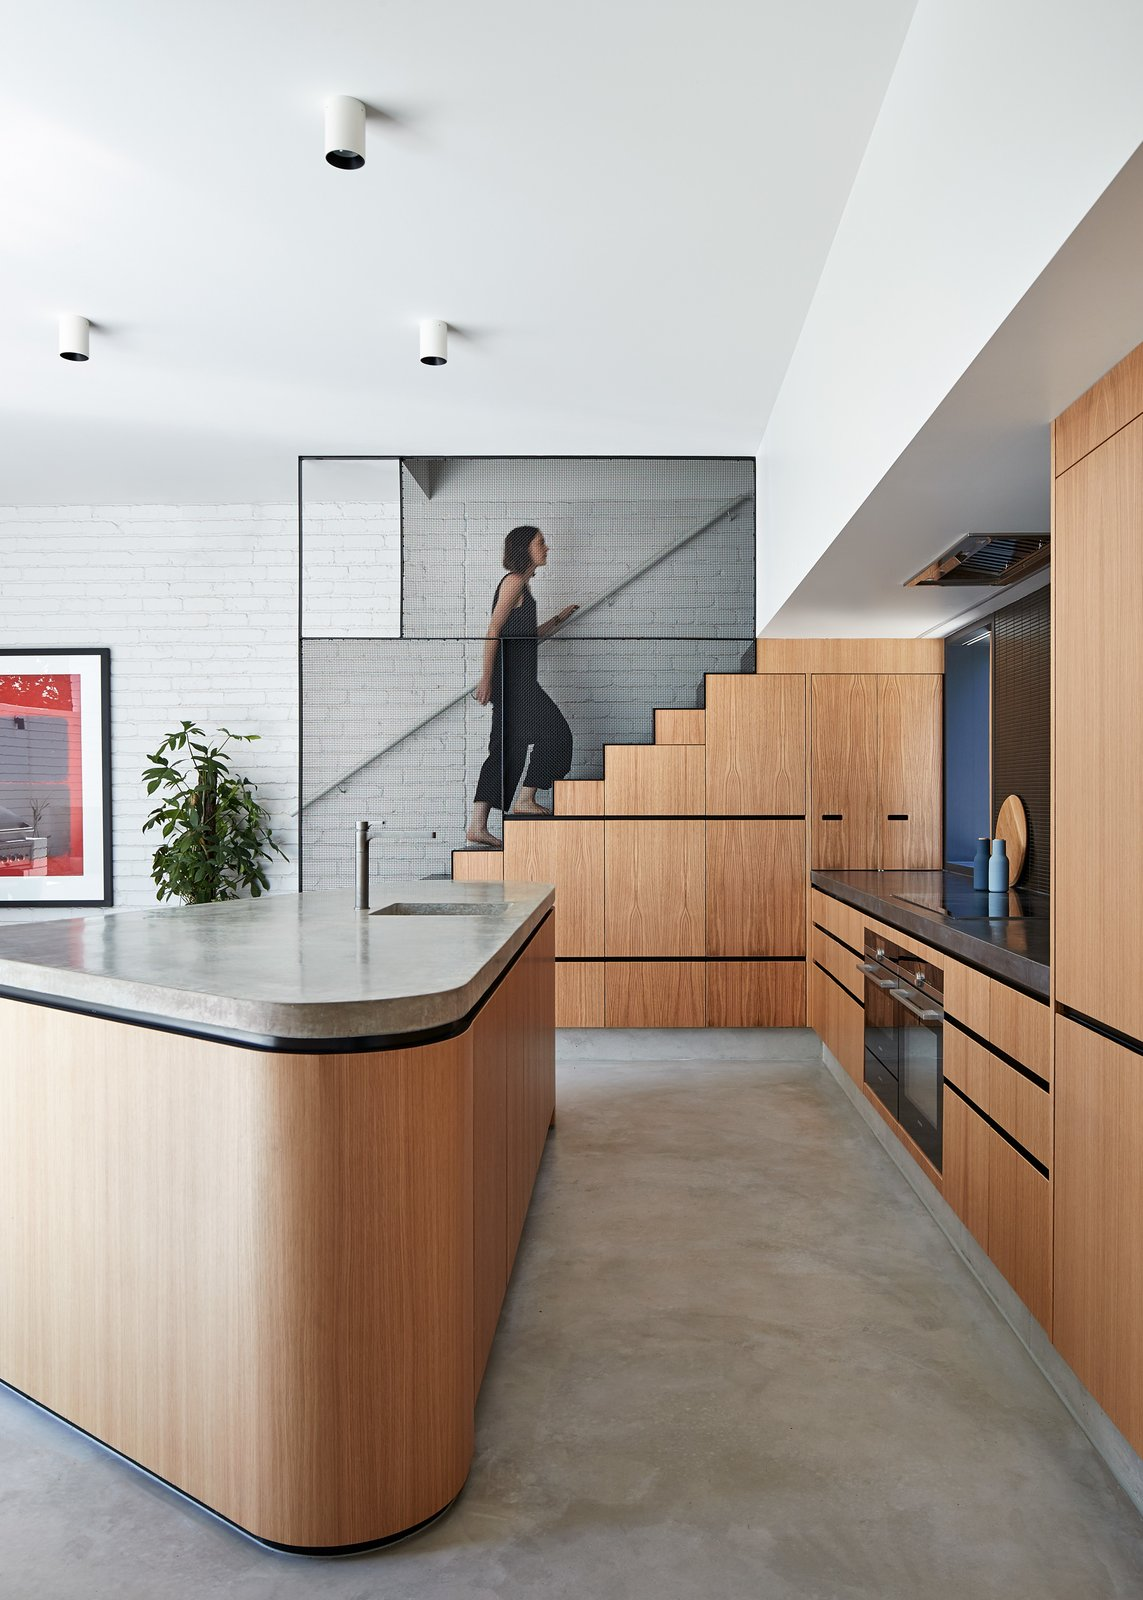 Kitchen, Concrete, Cooktops, Concrete, Refrigerator, Wood, Range Hood, Wall Oven, Ceiling, Concrete, and Undermount A steel mesh balustrade lines the stairway, which leads to the rooftop deck.  Best Kitchen Concrete Cooktops Photos